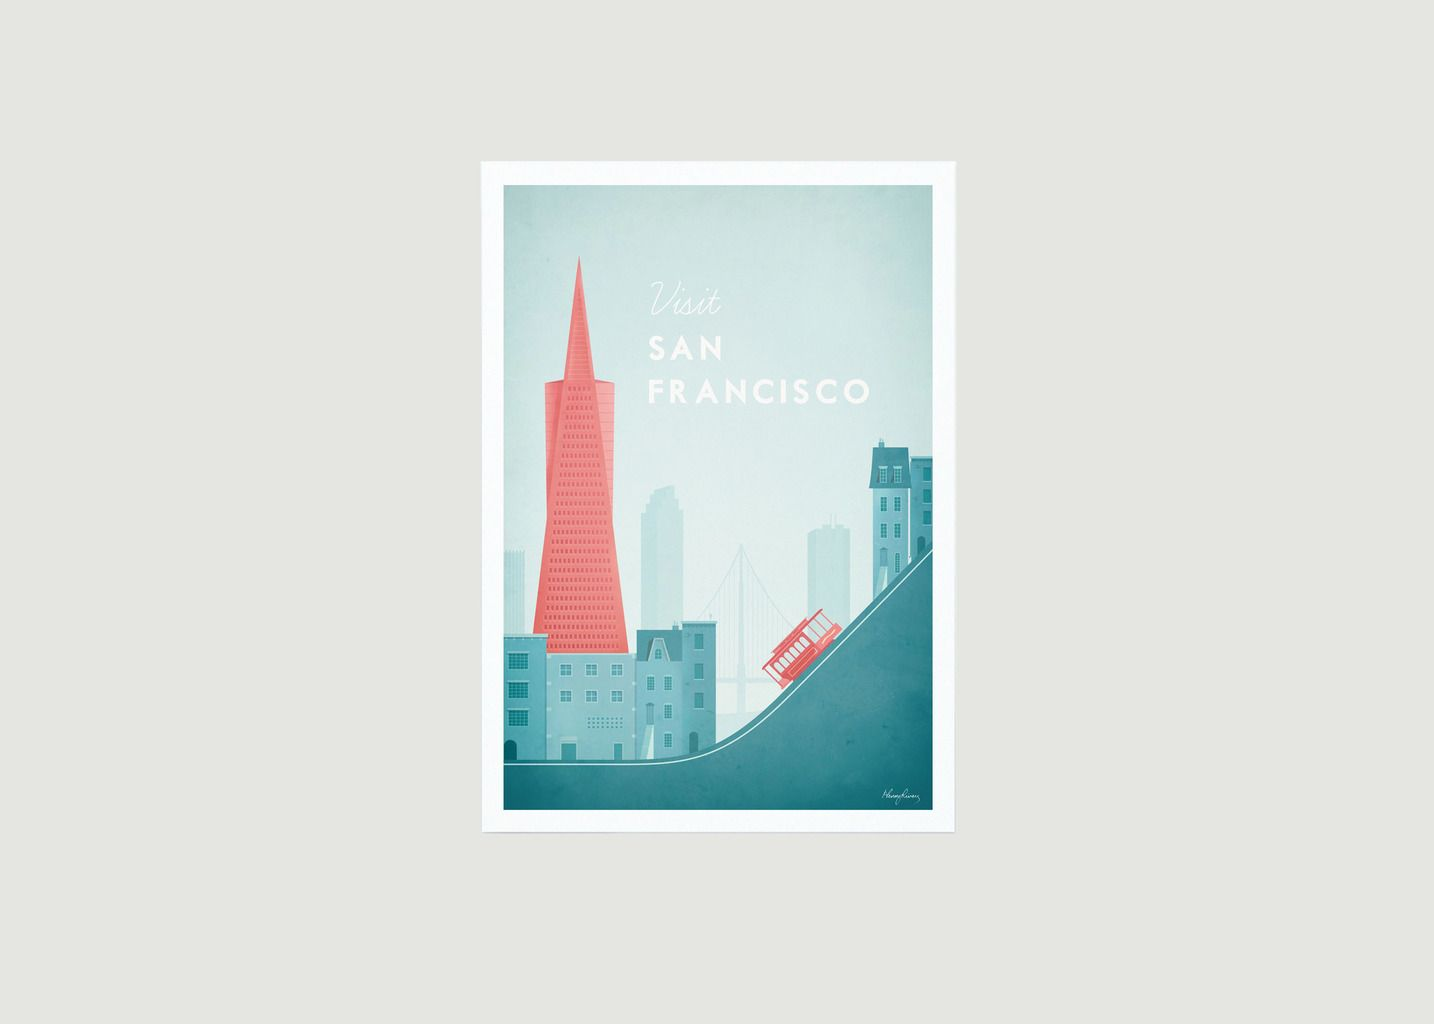 Travel Poster San Francisco A2 - Travel Poster co